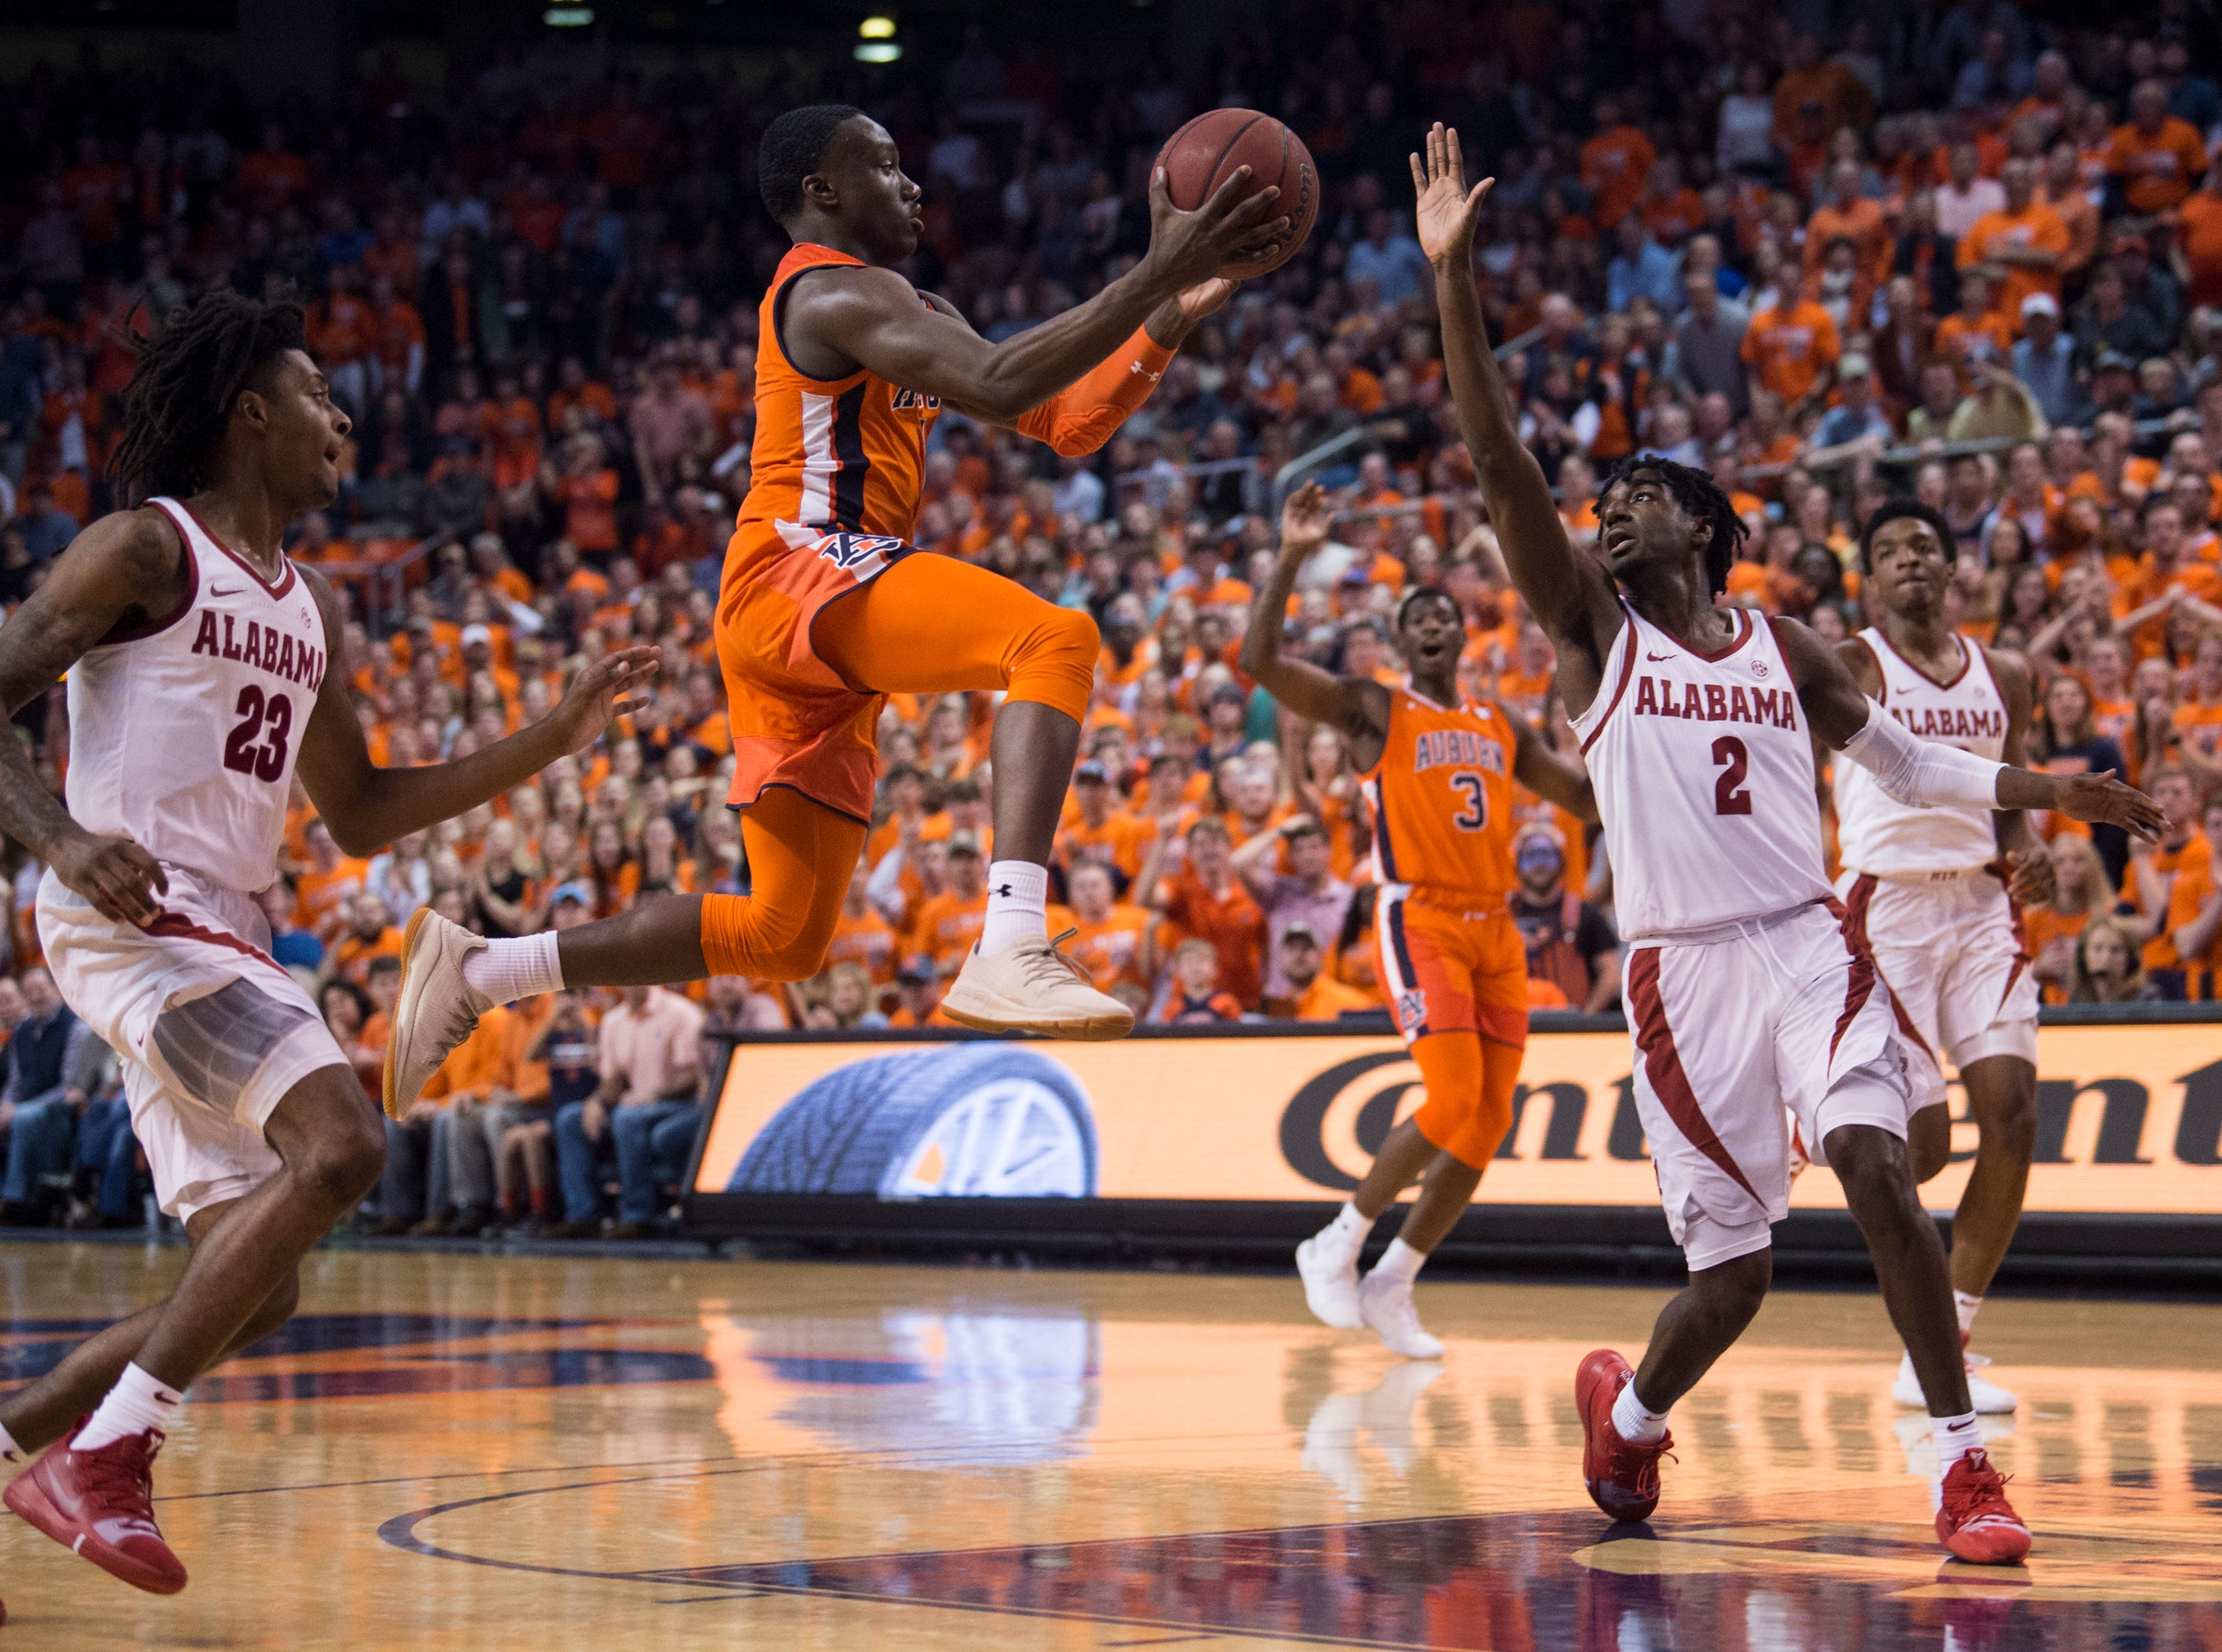 Auburn guard Jared Harper (1) makes a alley-op pass at Auburn Arena in Auburn, Ala., on Saturday, Feb. 2, 2019. Auburn leads Alabama 48-28 at halftime.